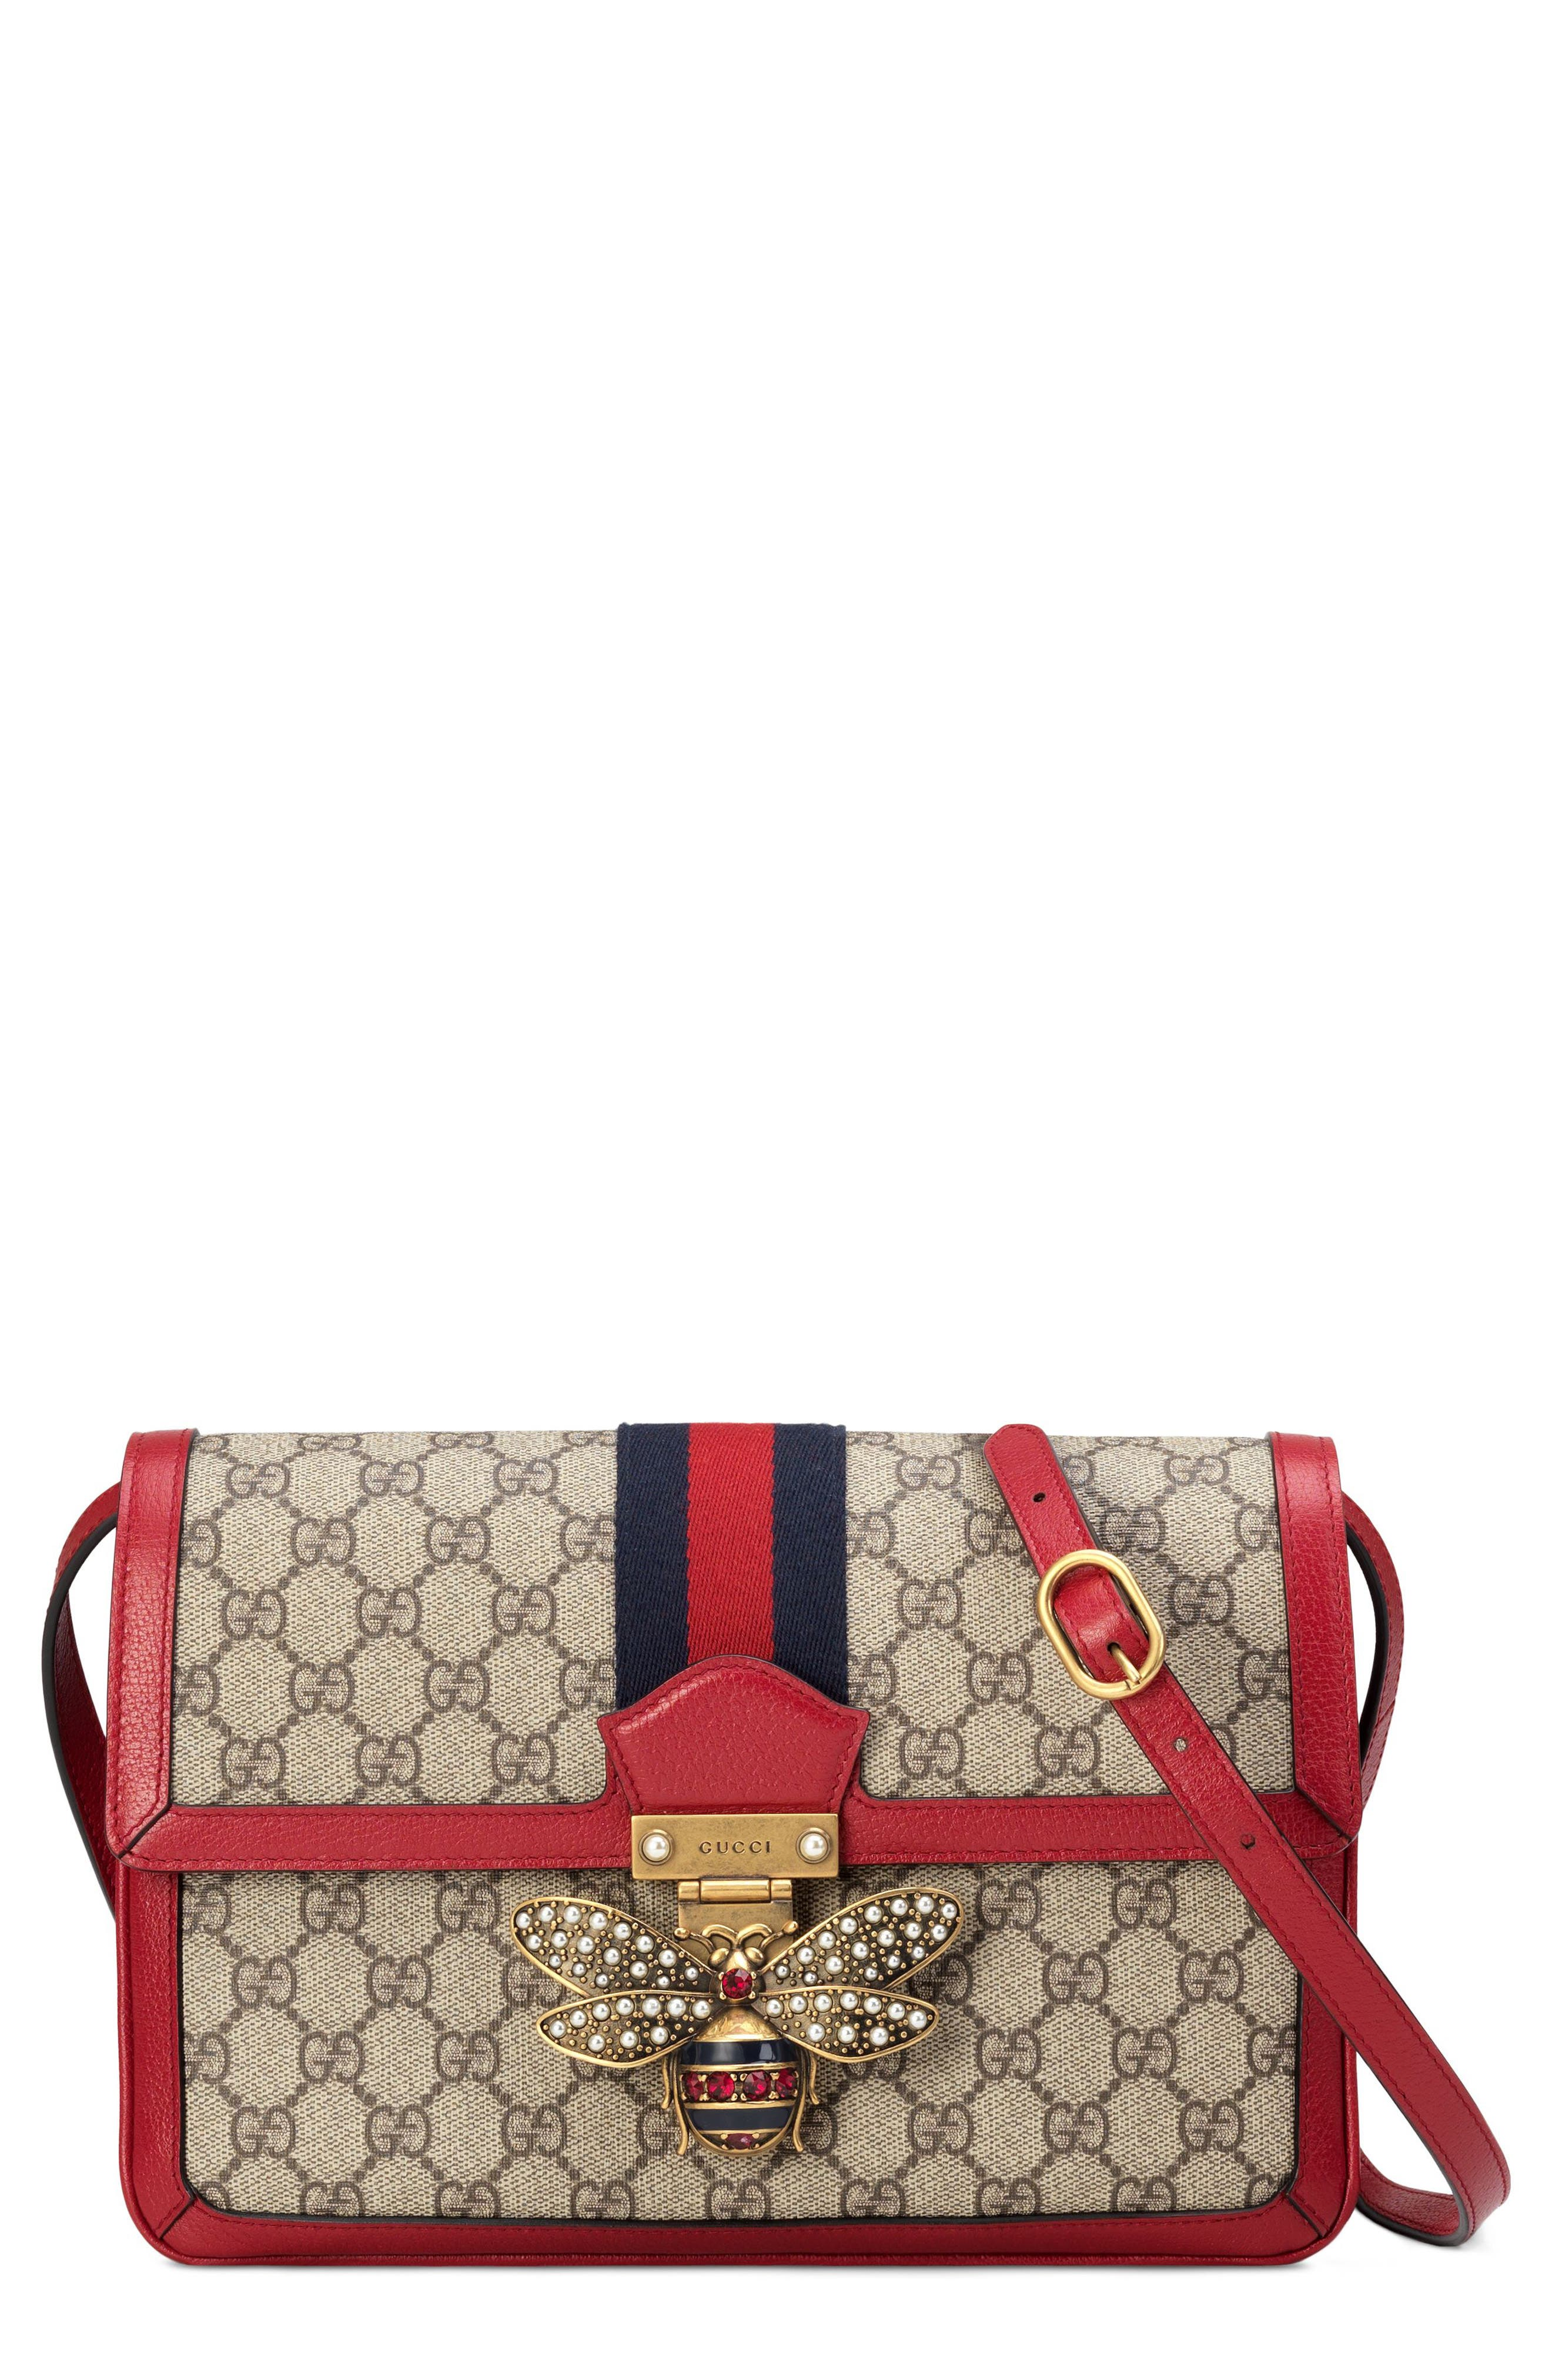 Queen Margaret GG Supreme Small Crossbody Bag,                             Main thumbnail 1, color,                             Beige Ebony/ Blue Red/ Ruby